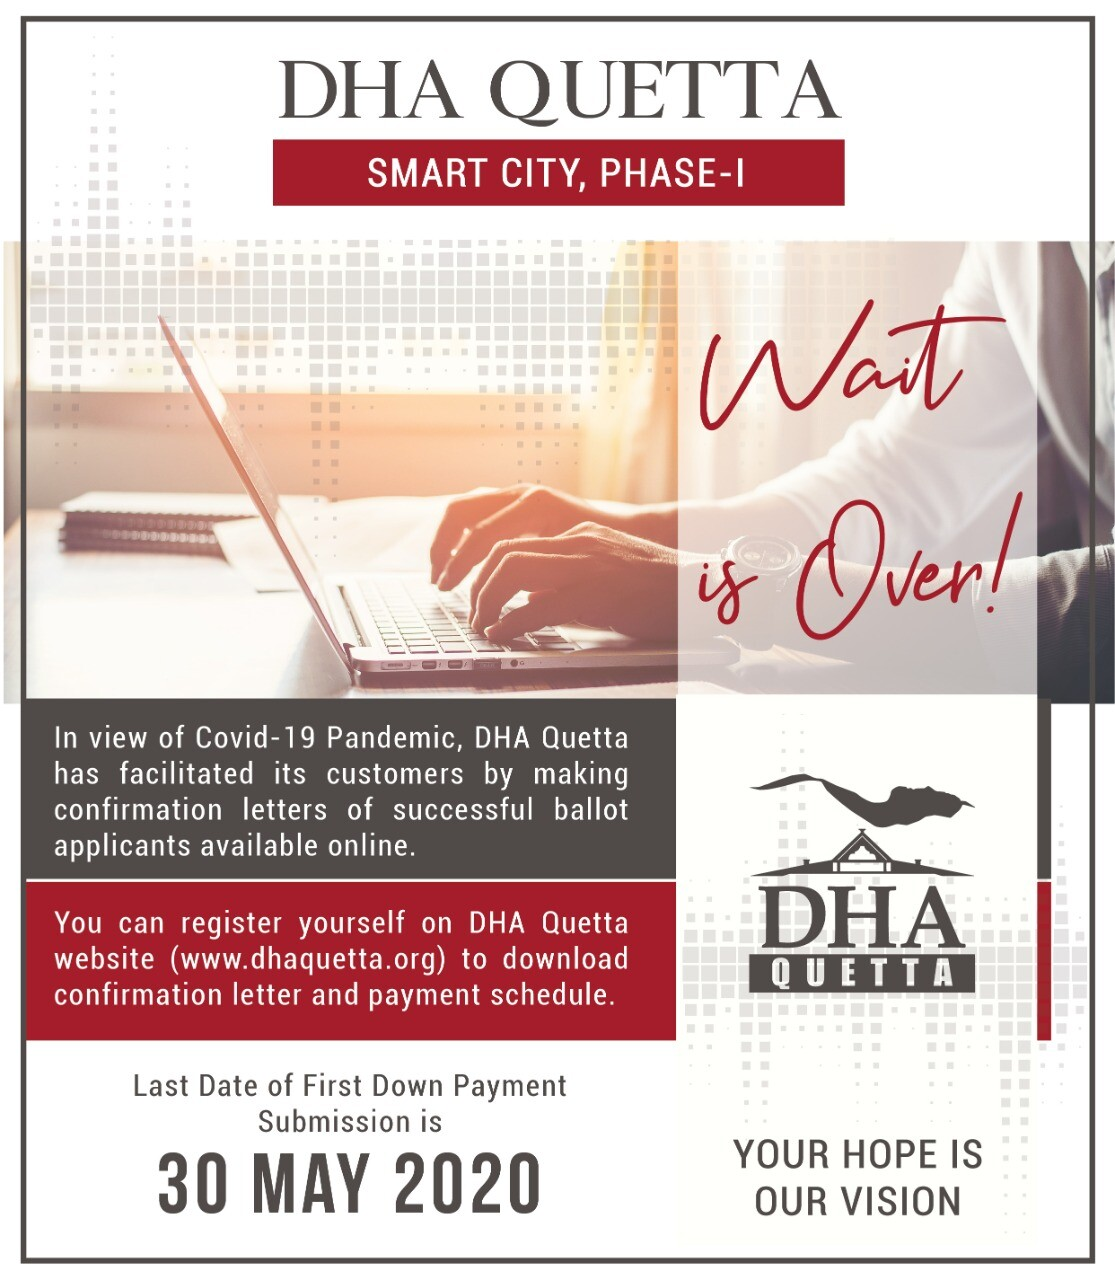 DHA Quetta Confirmation Letters are Online